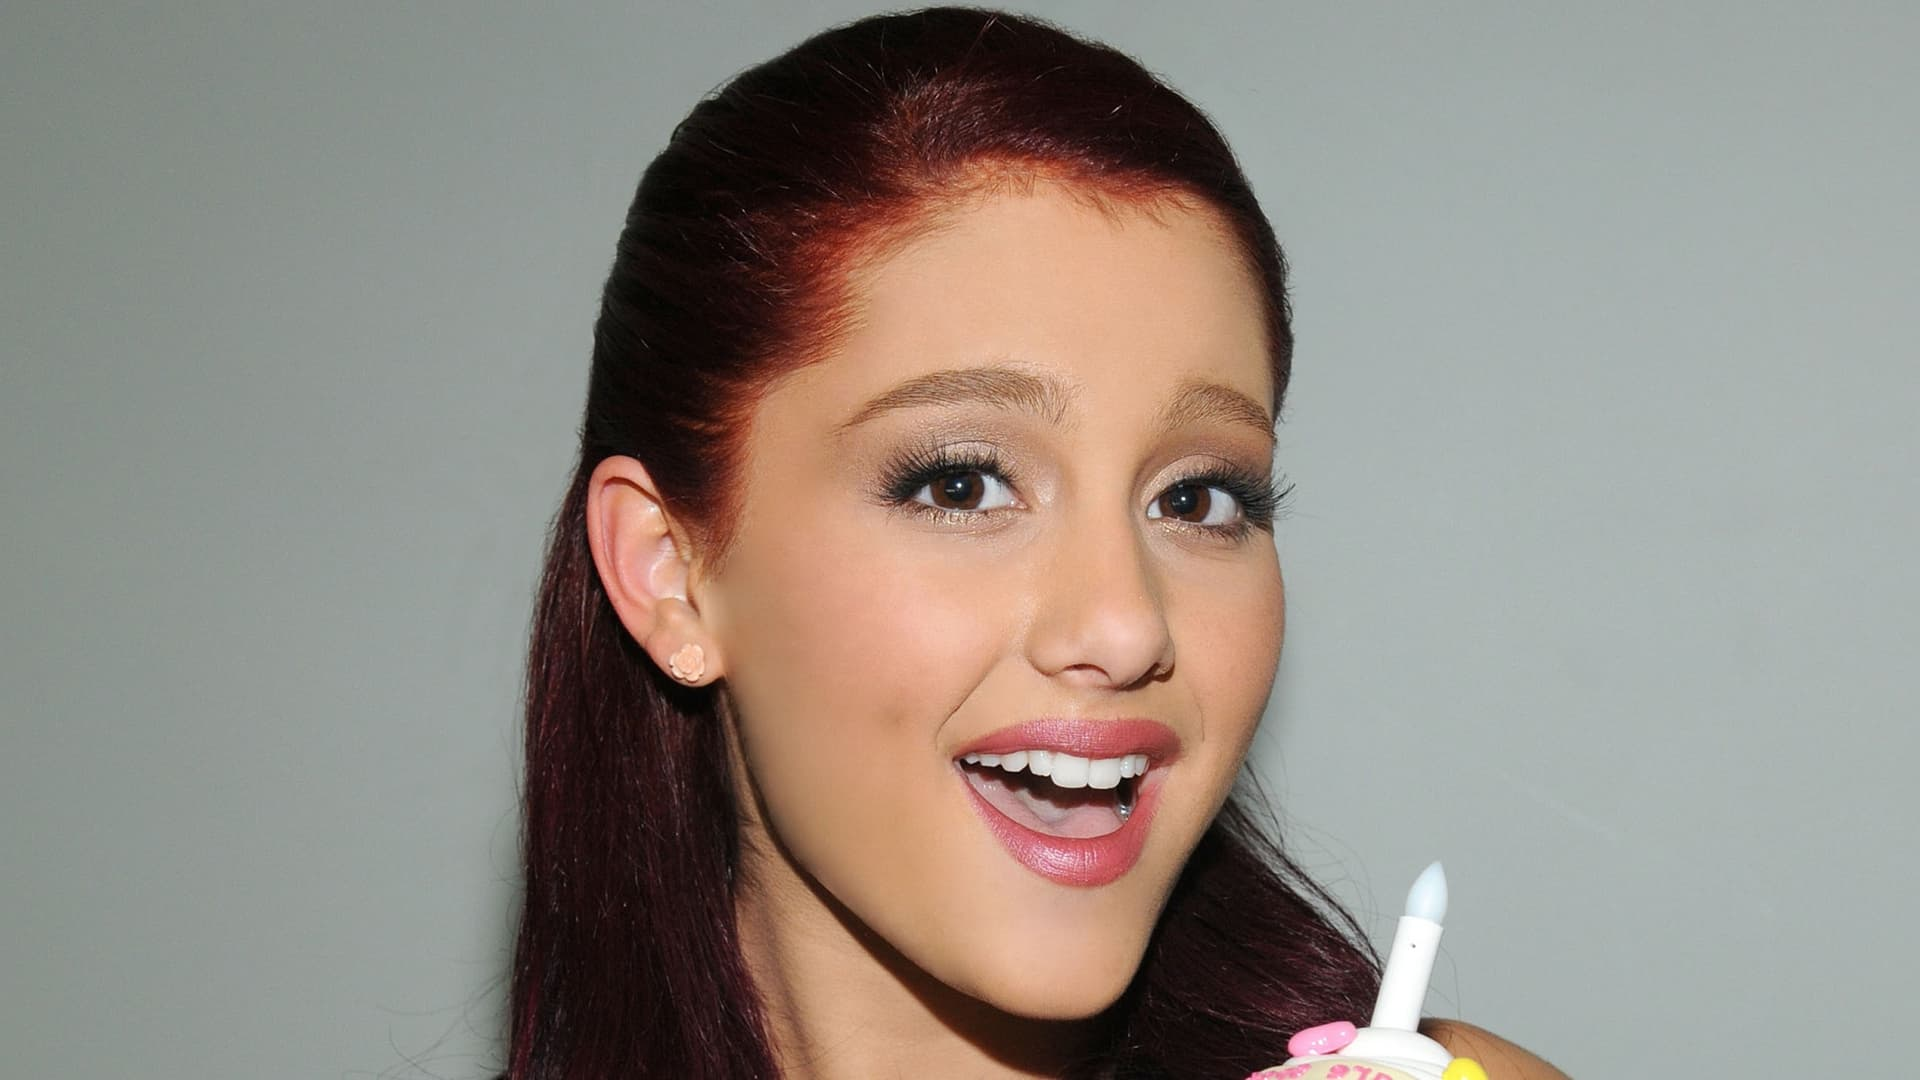 25+ Ariana Grande wallpapers High Quality Download Lily Allen